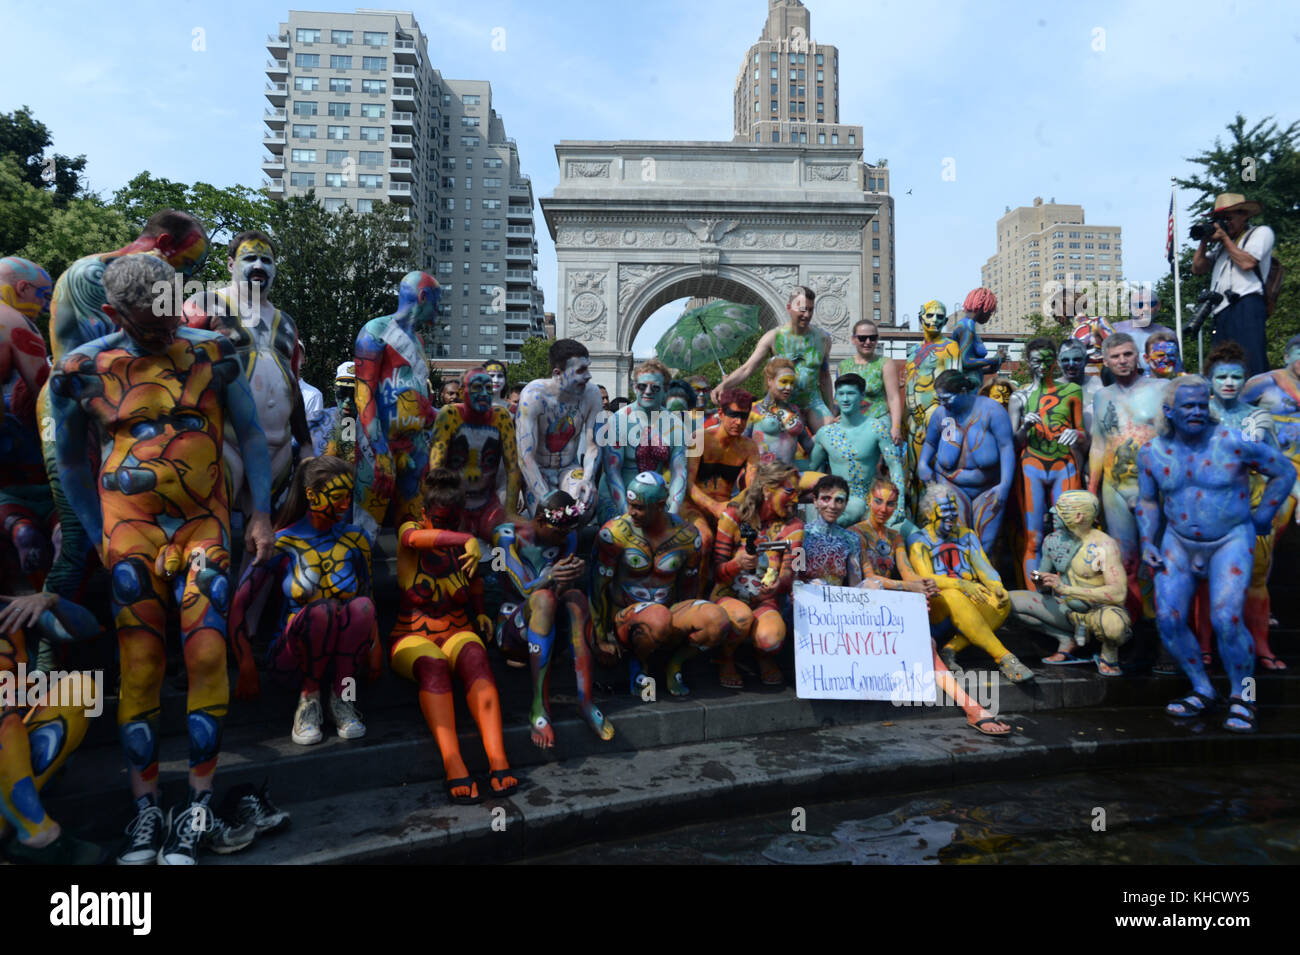 BodyPainting Day Coming to Washington Square Park NYC